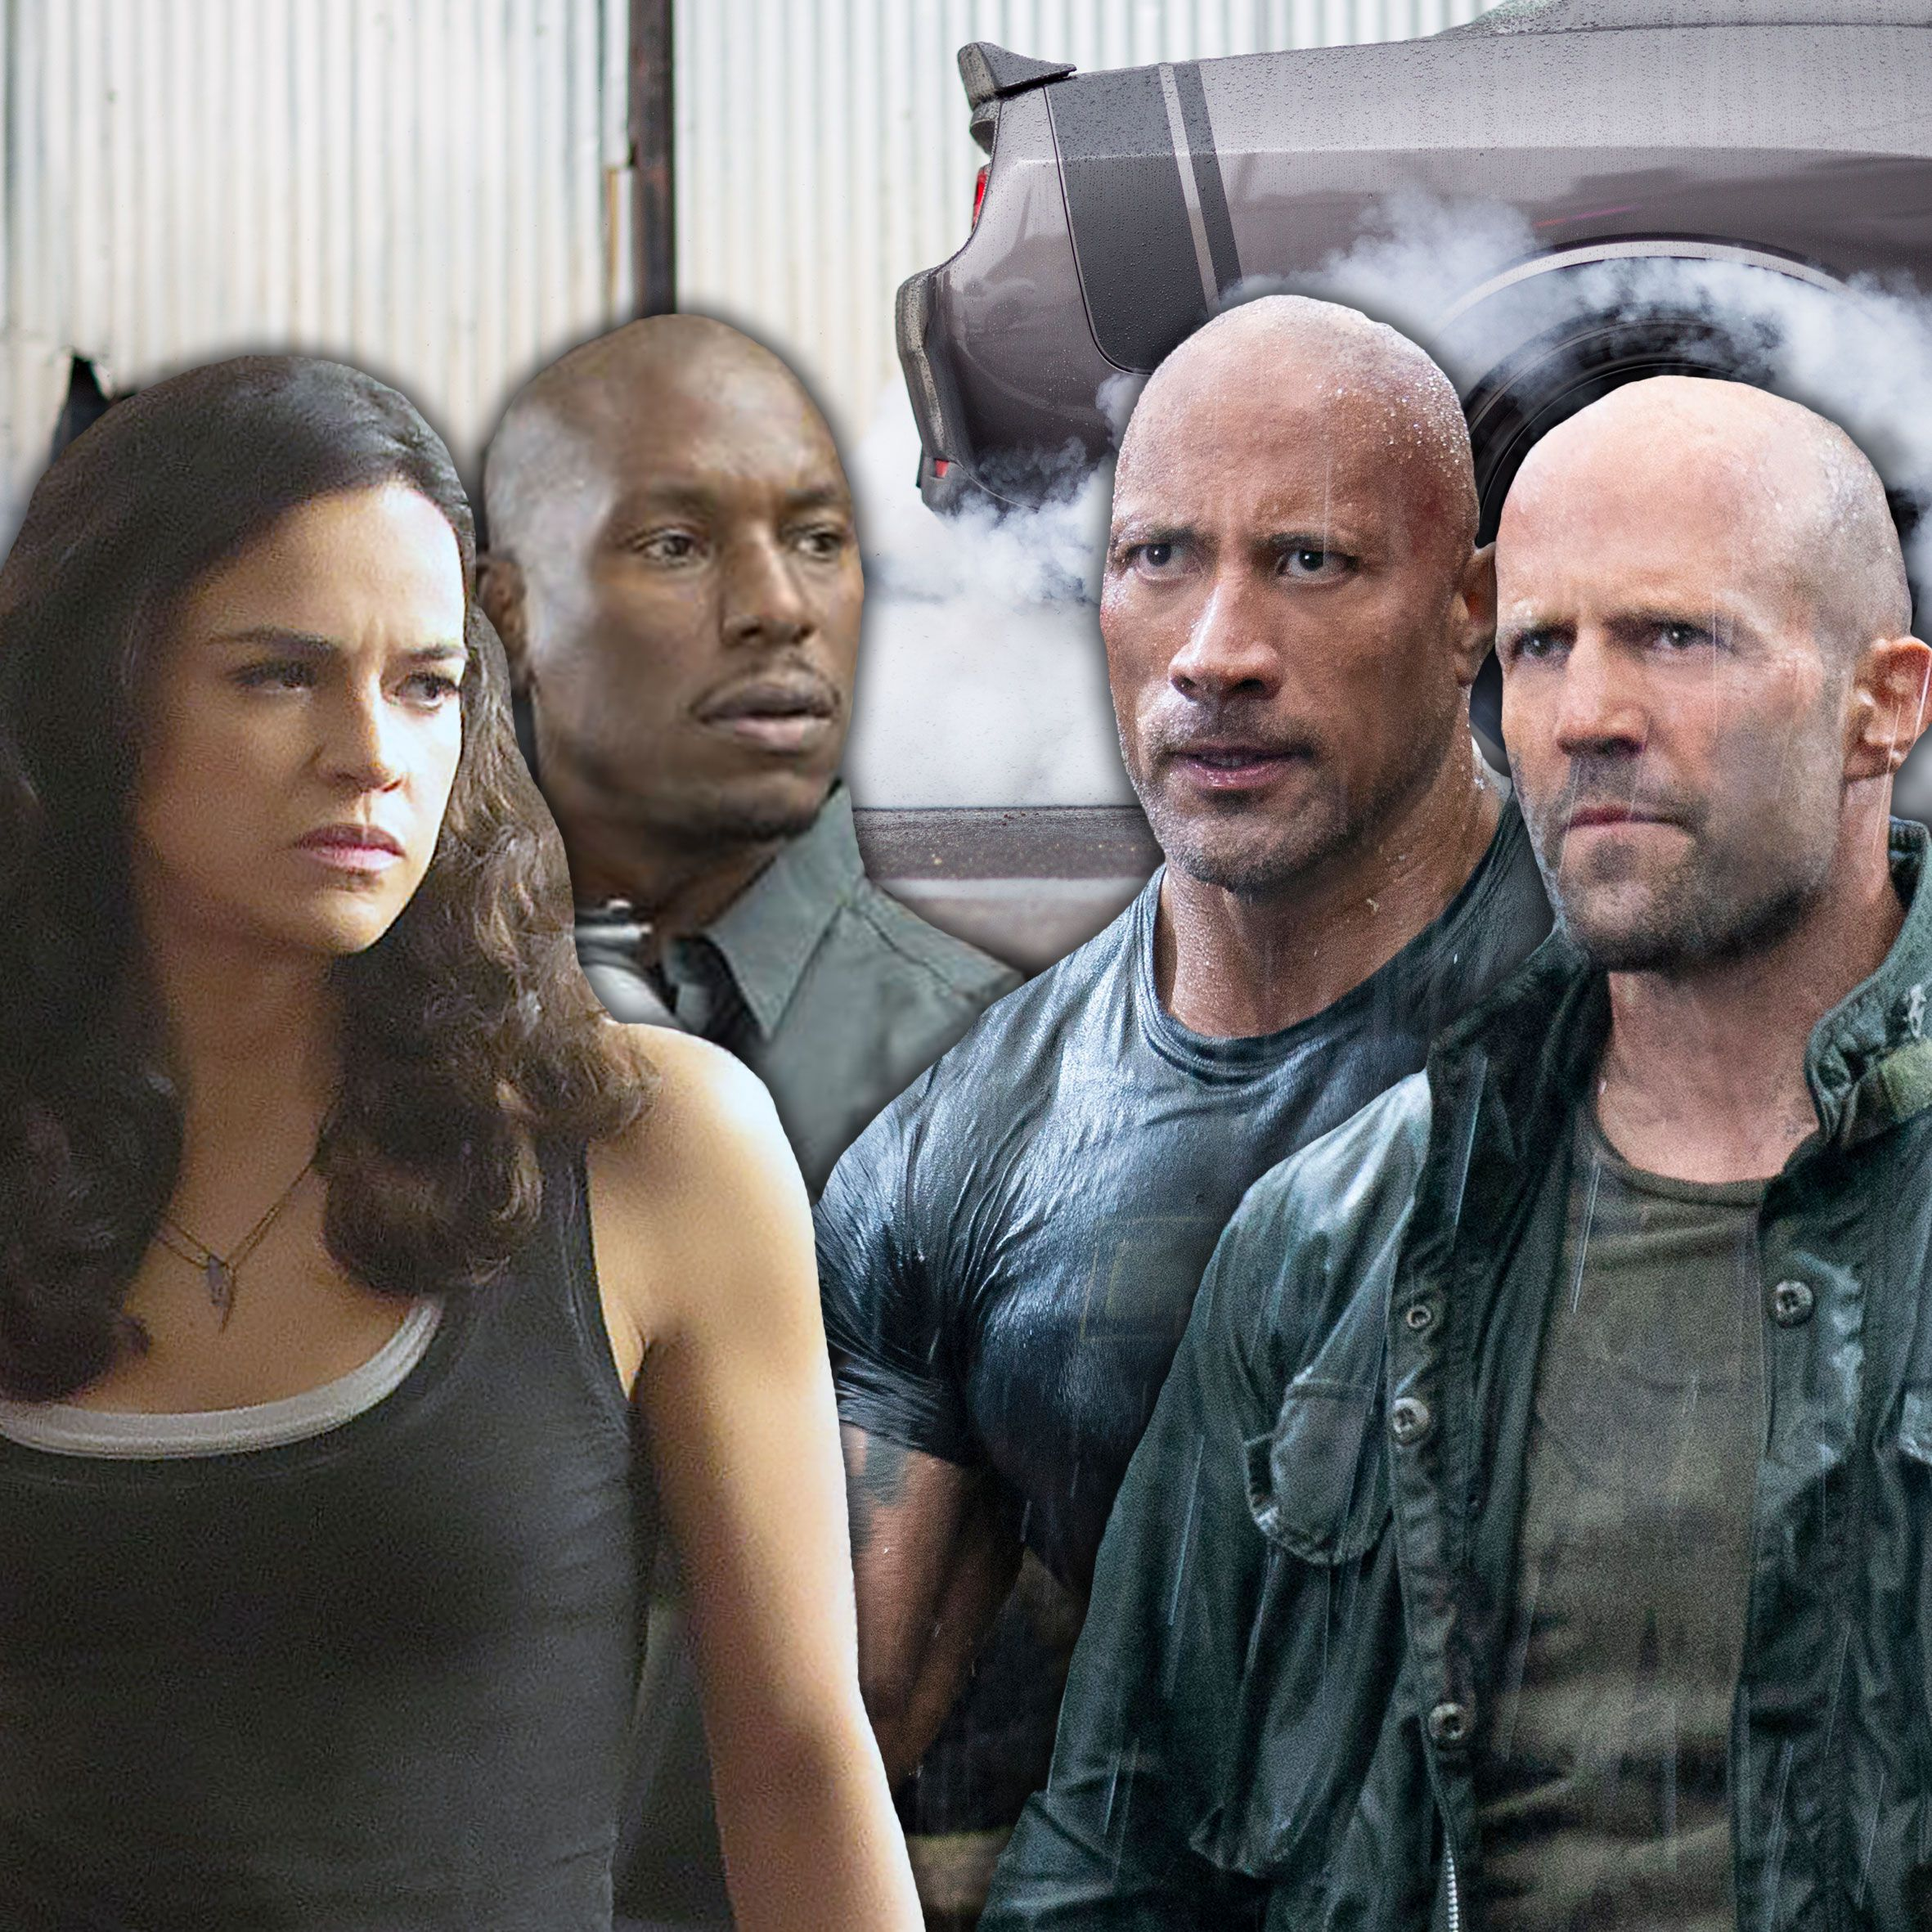 Why Fast & Furious cast members are throwing shade at Hobbs & Shaw